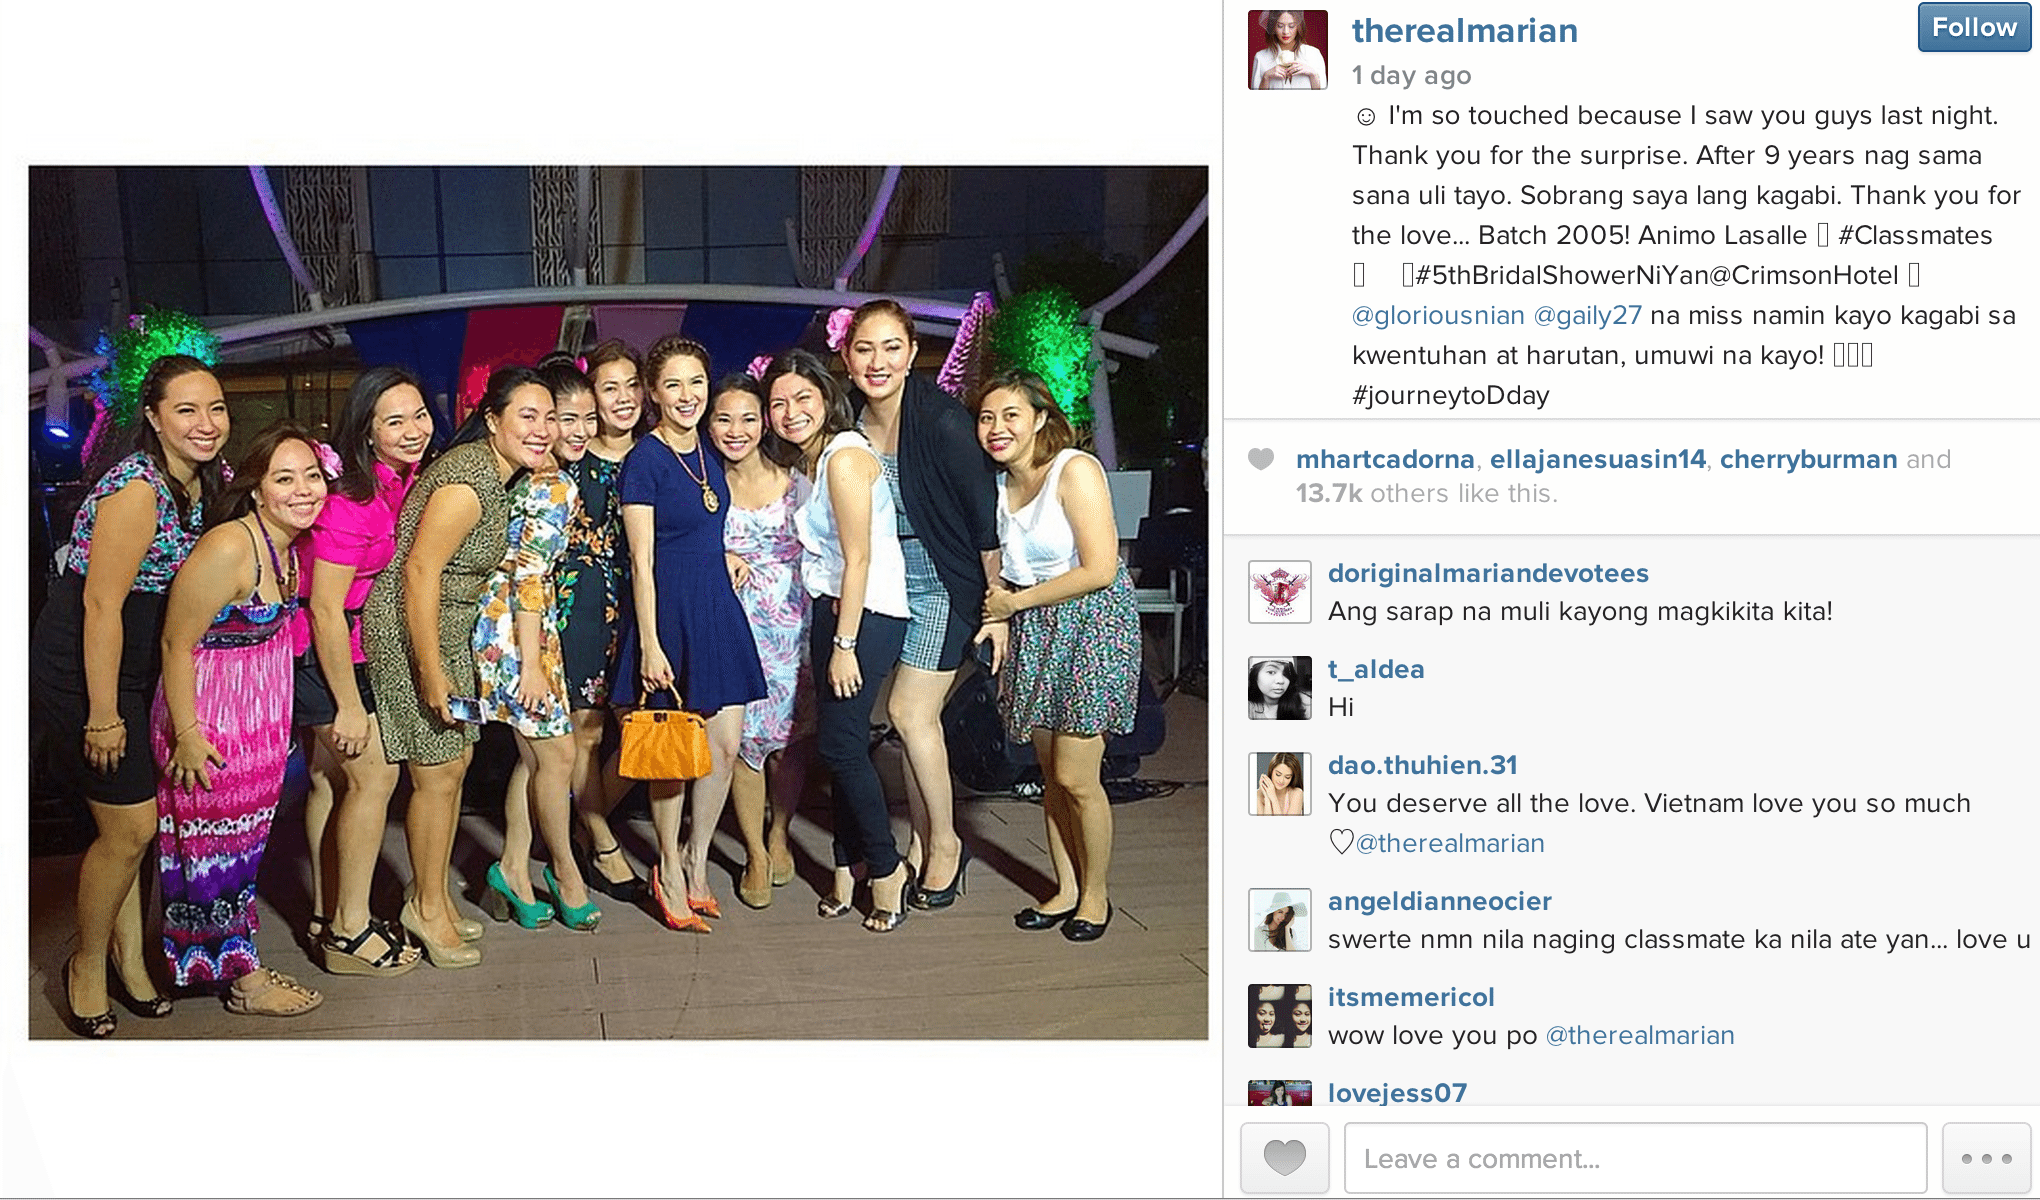 From @therealmarian's Instagram